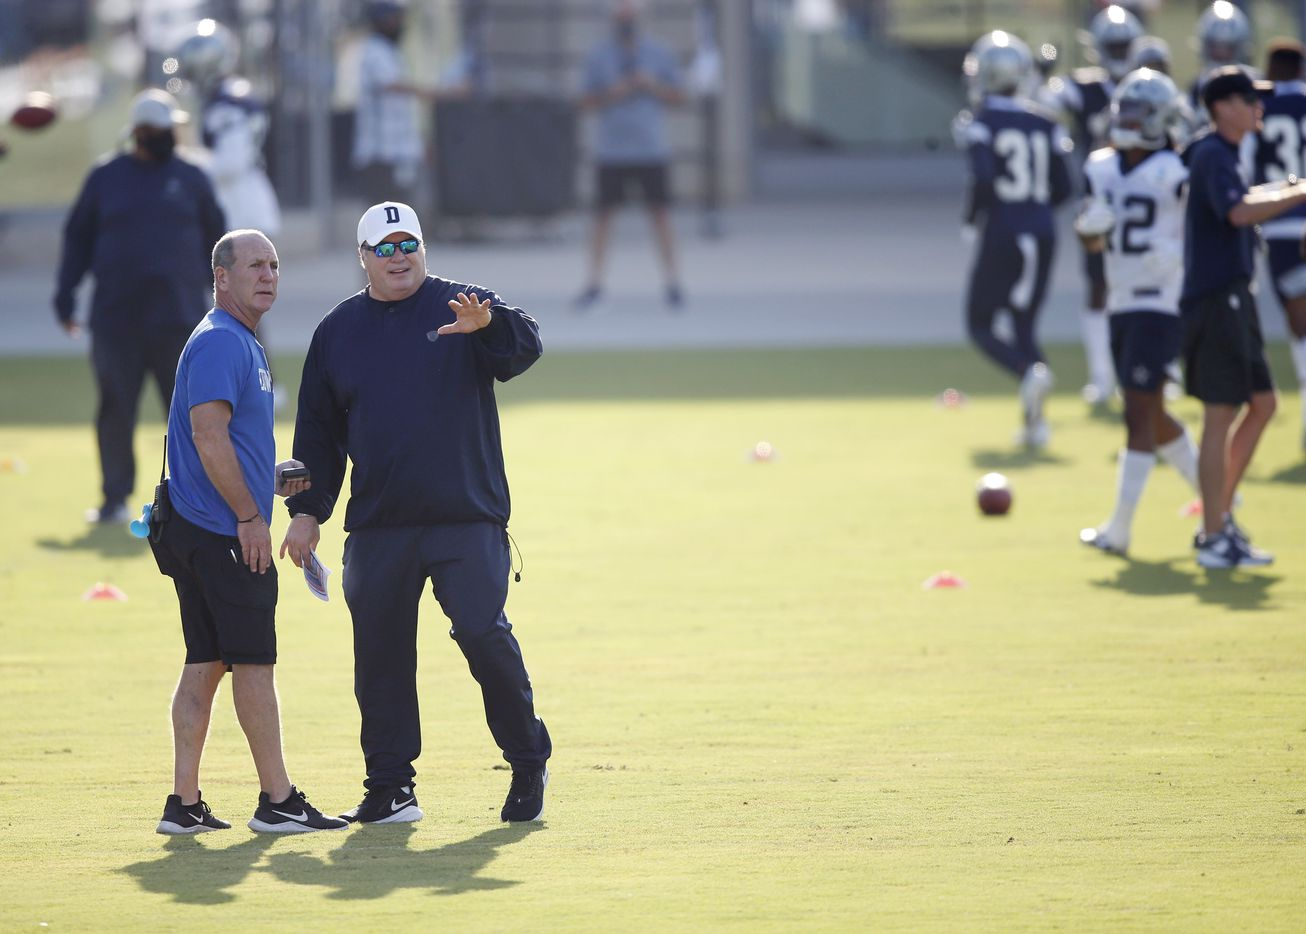 Dallas Cowboys head coach Mike McCarthy talks with Dallas Cowboys equipment coordinator Bucky Buchanan during practice on the first day of training camp at Dallas Cowboys headquarters at The Star in Frisco, Texas on Friday, August 14, 2020. (Vernon Bryant/The Dallas Morning News)